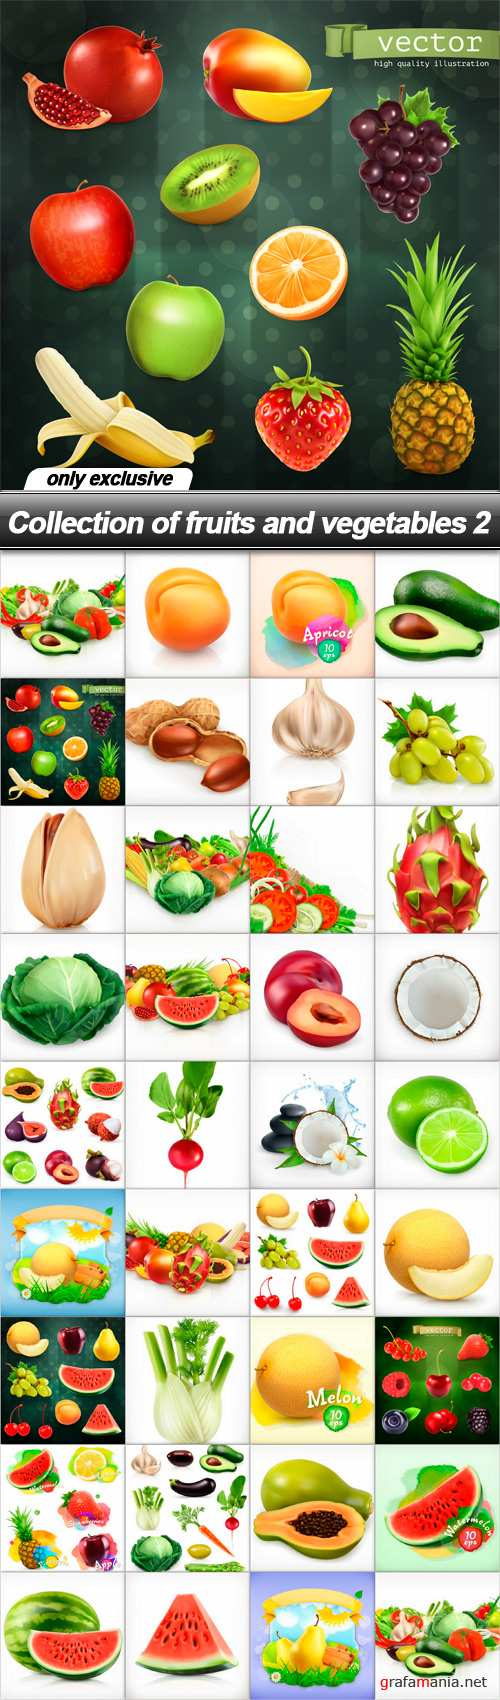 Collection of fruits and vegetables 2